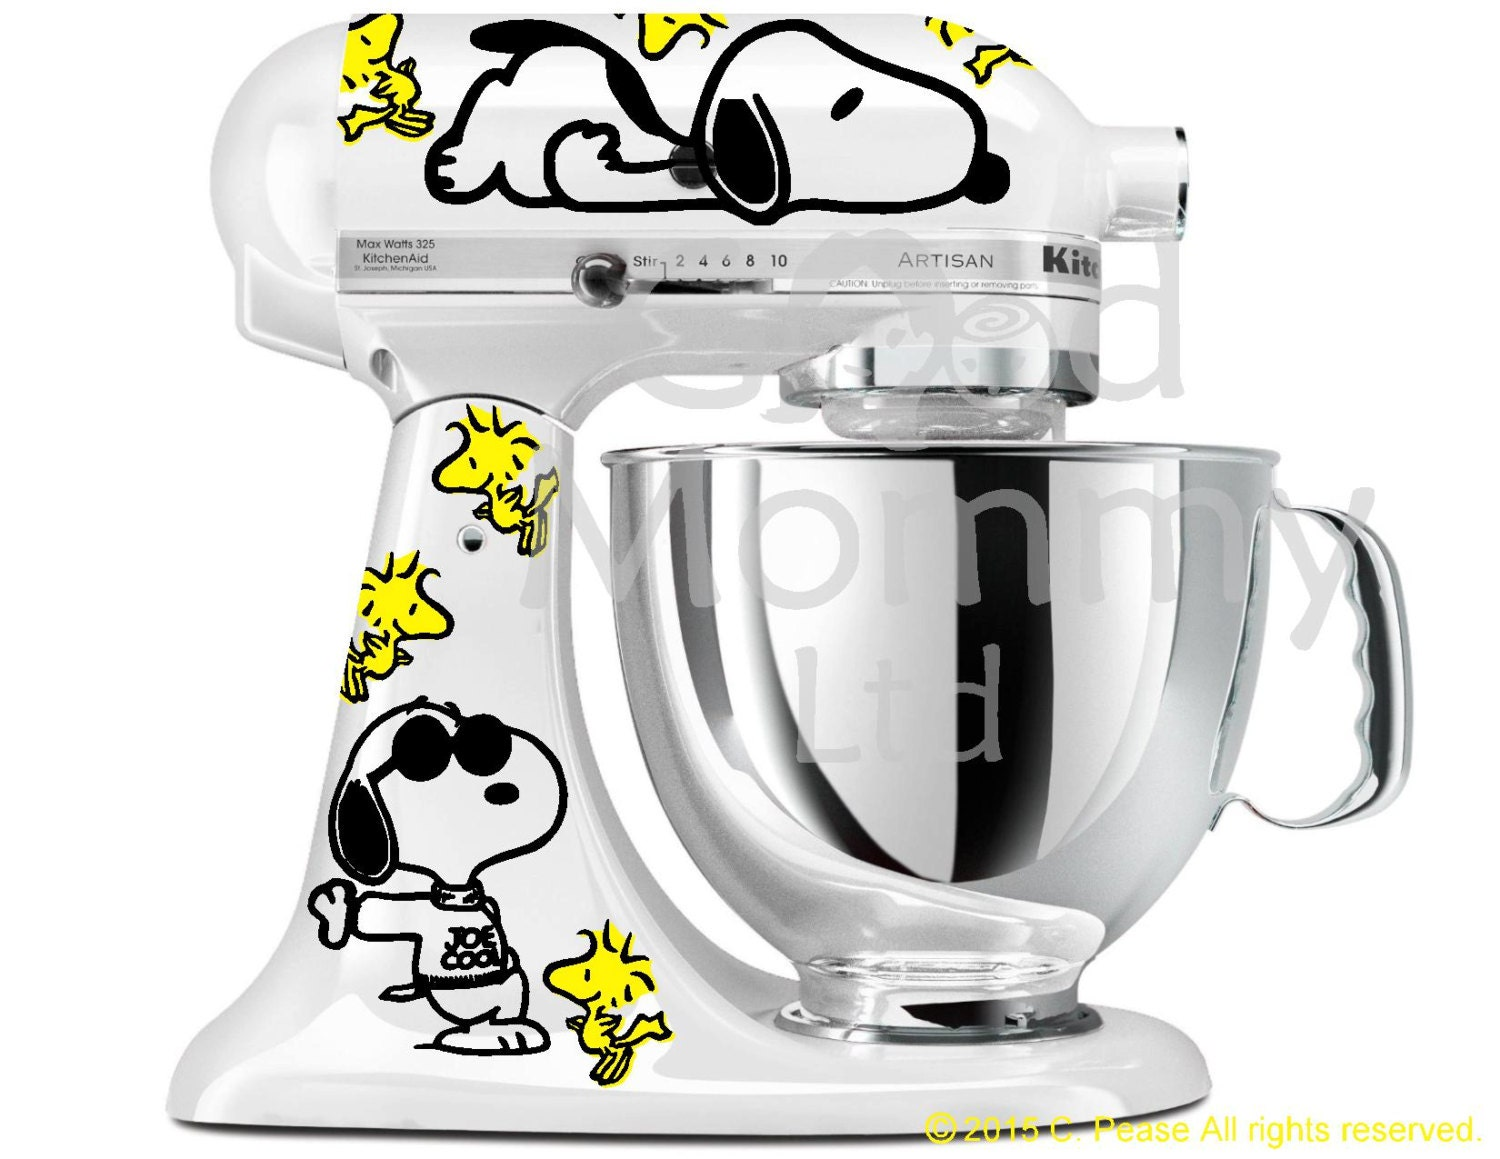 Peanuts Inspired Stand Mixer Decal Kit For Your Kitchenaid